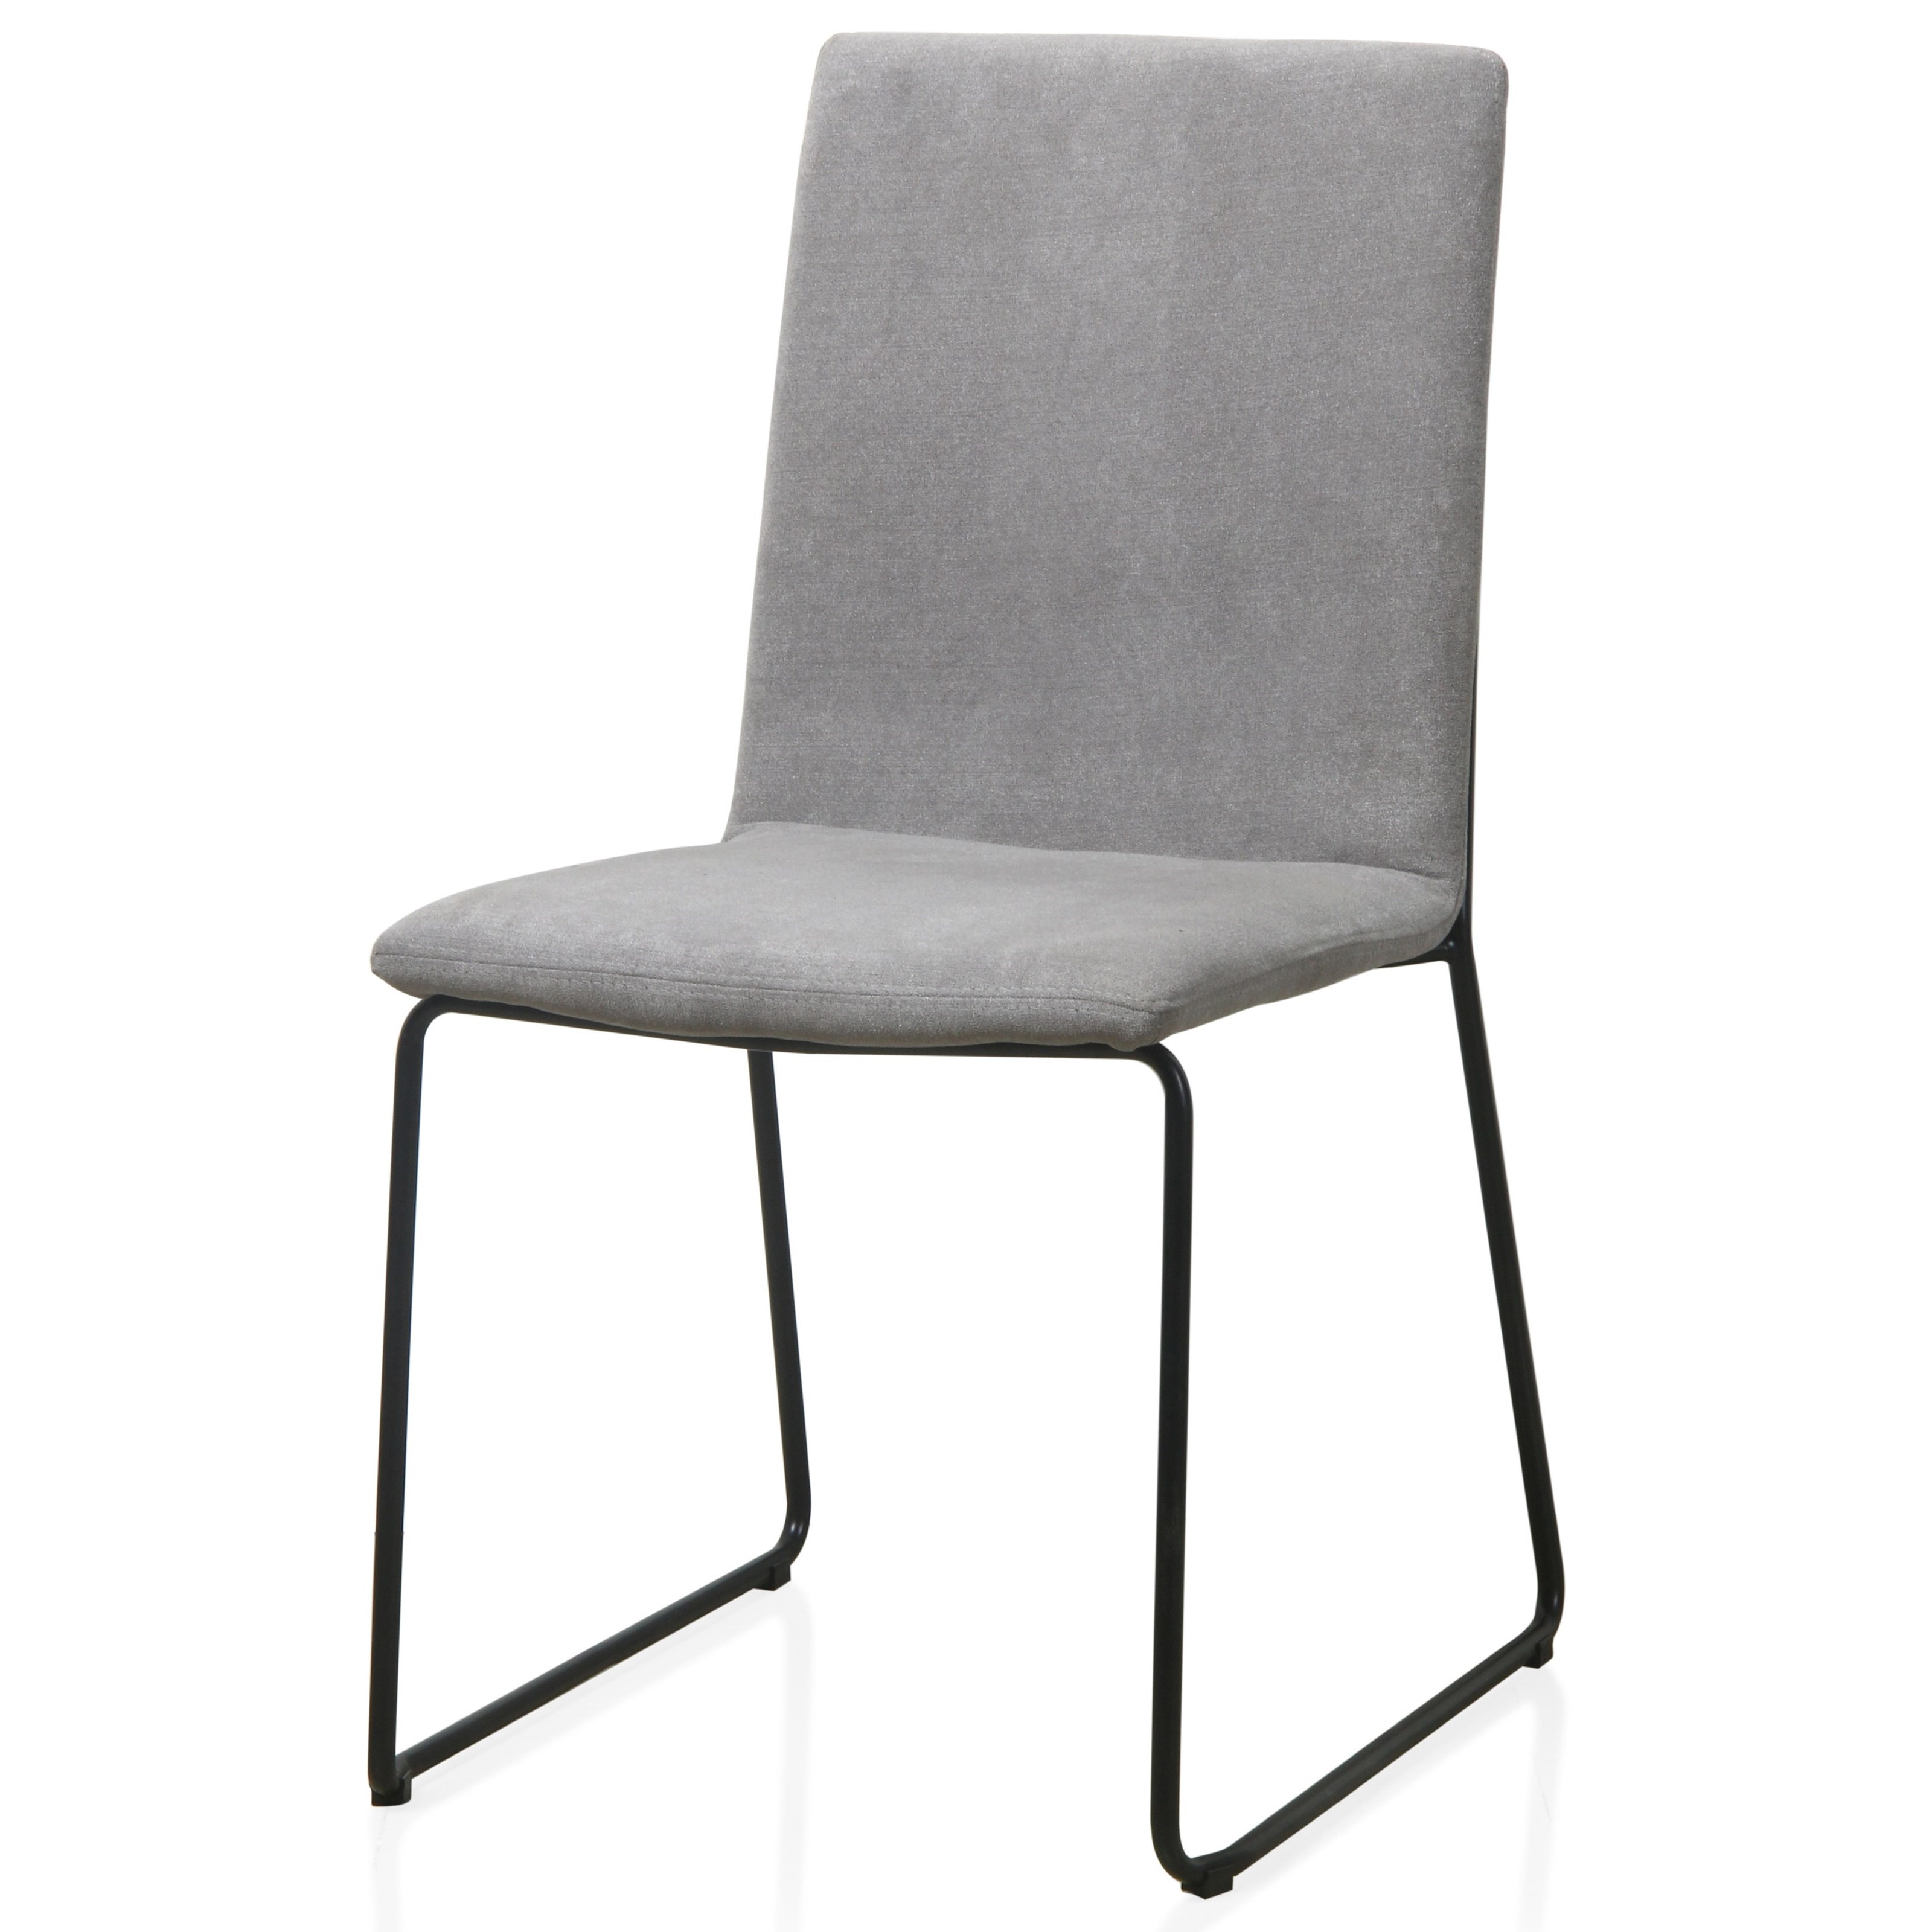 Baird Upholstered Sled Base Dining Chair in